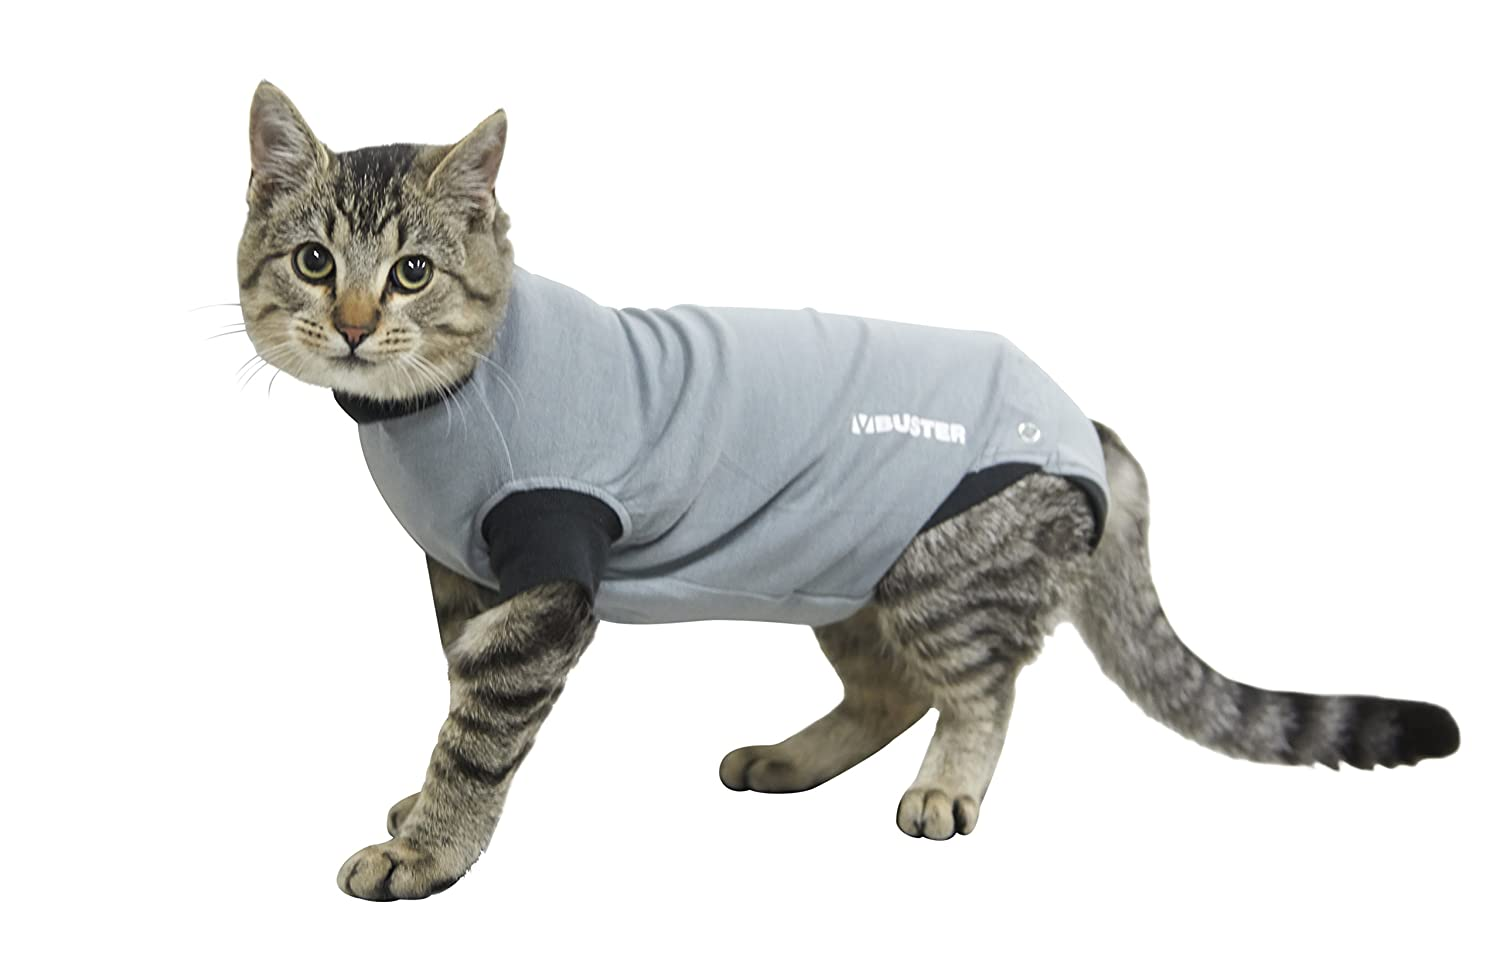 Buster Body Suit Easygo for Cats, 40 cm, X-Small: Amazon.co.uk: Pet ...